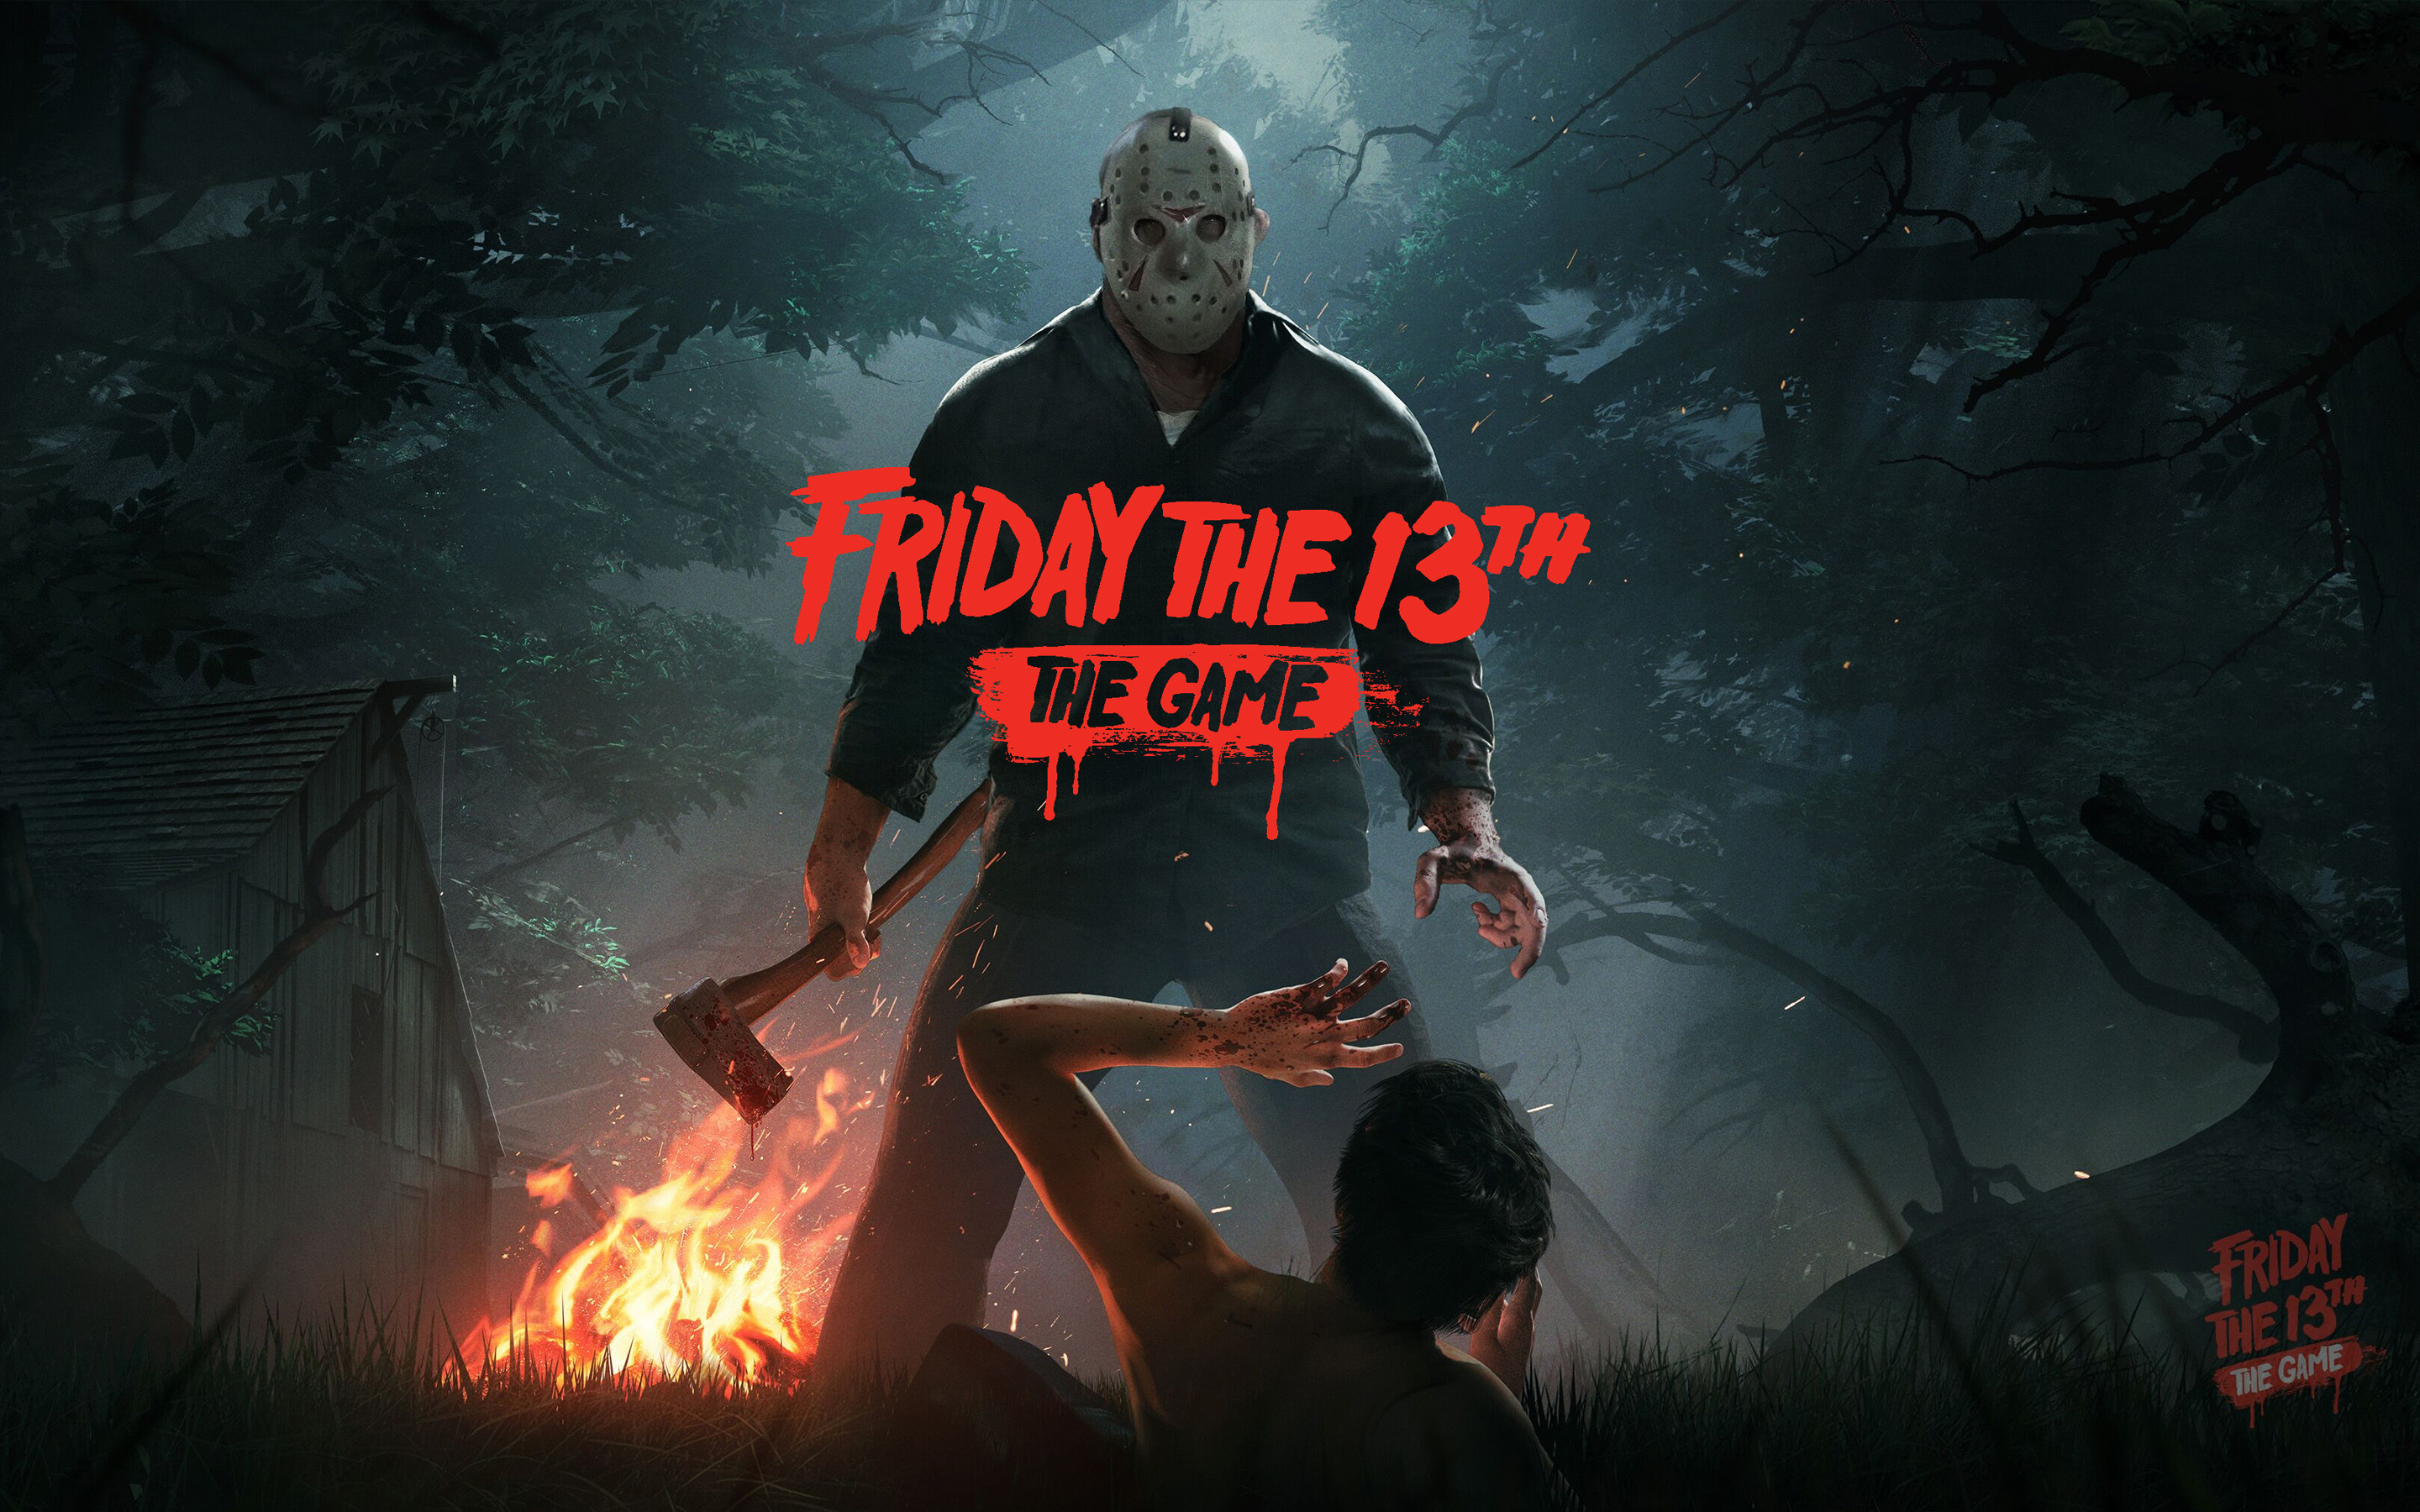 Friday The 13th The Game 1366×768 Resolution